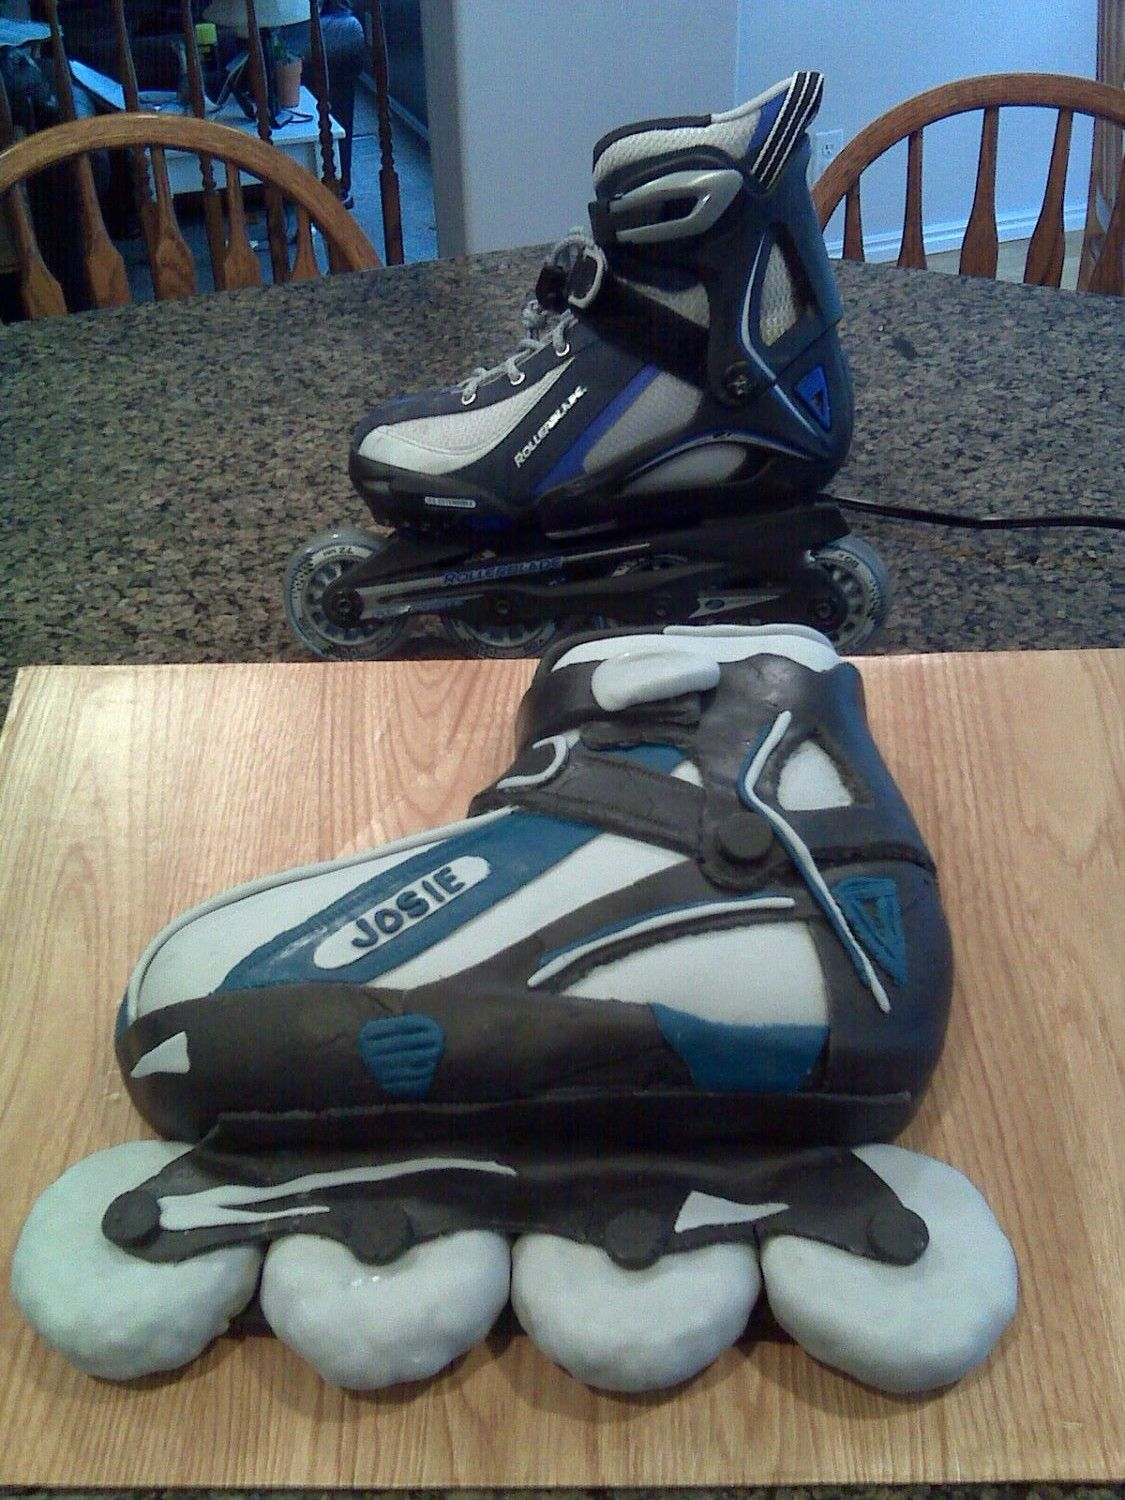 Roller Blade Birthday Cake My Dd Picked A Rollerblade Cake To Go With Her Party At The Skate Ce Roller Skate Birthday Roller Skate Birthday Party Rollerblade